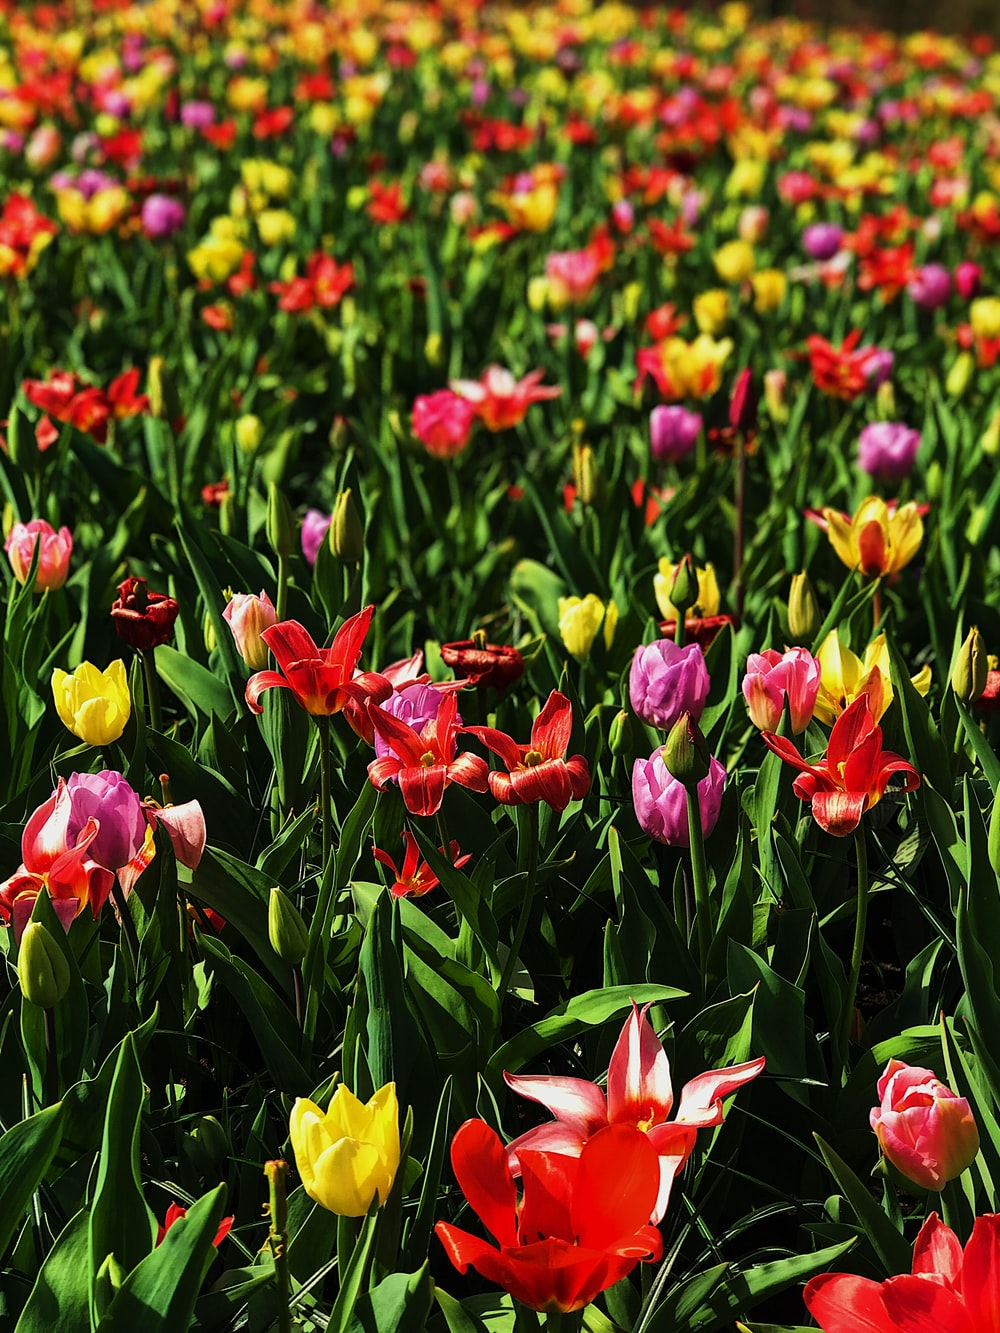 bed of red, pink, and yellow petaled flowers